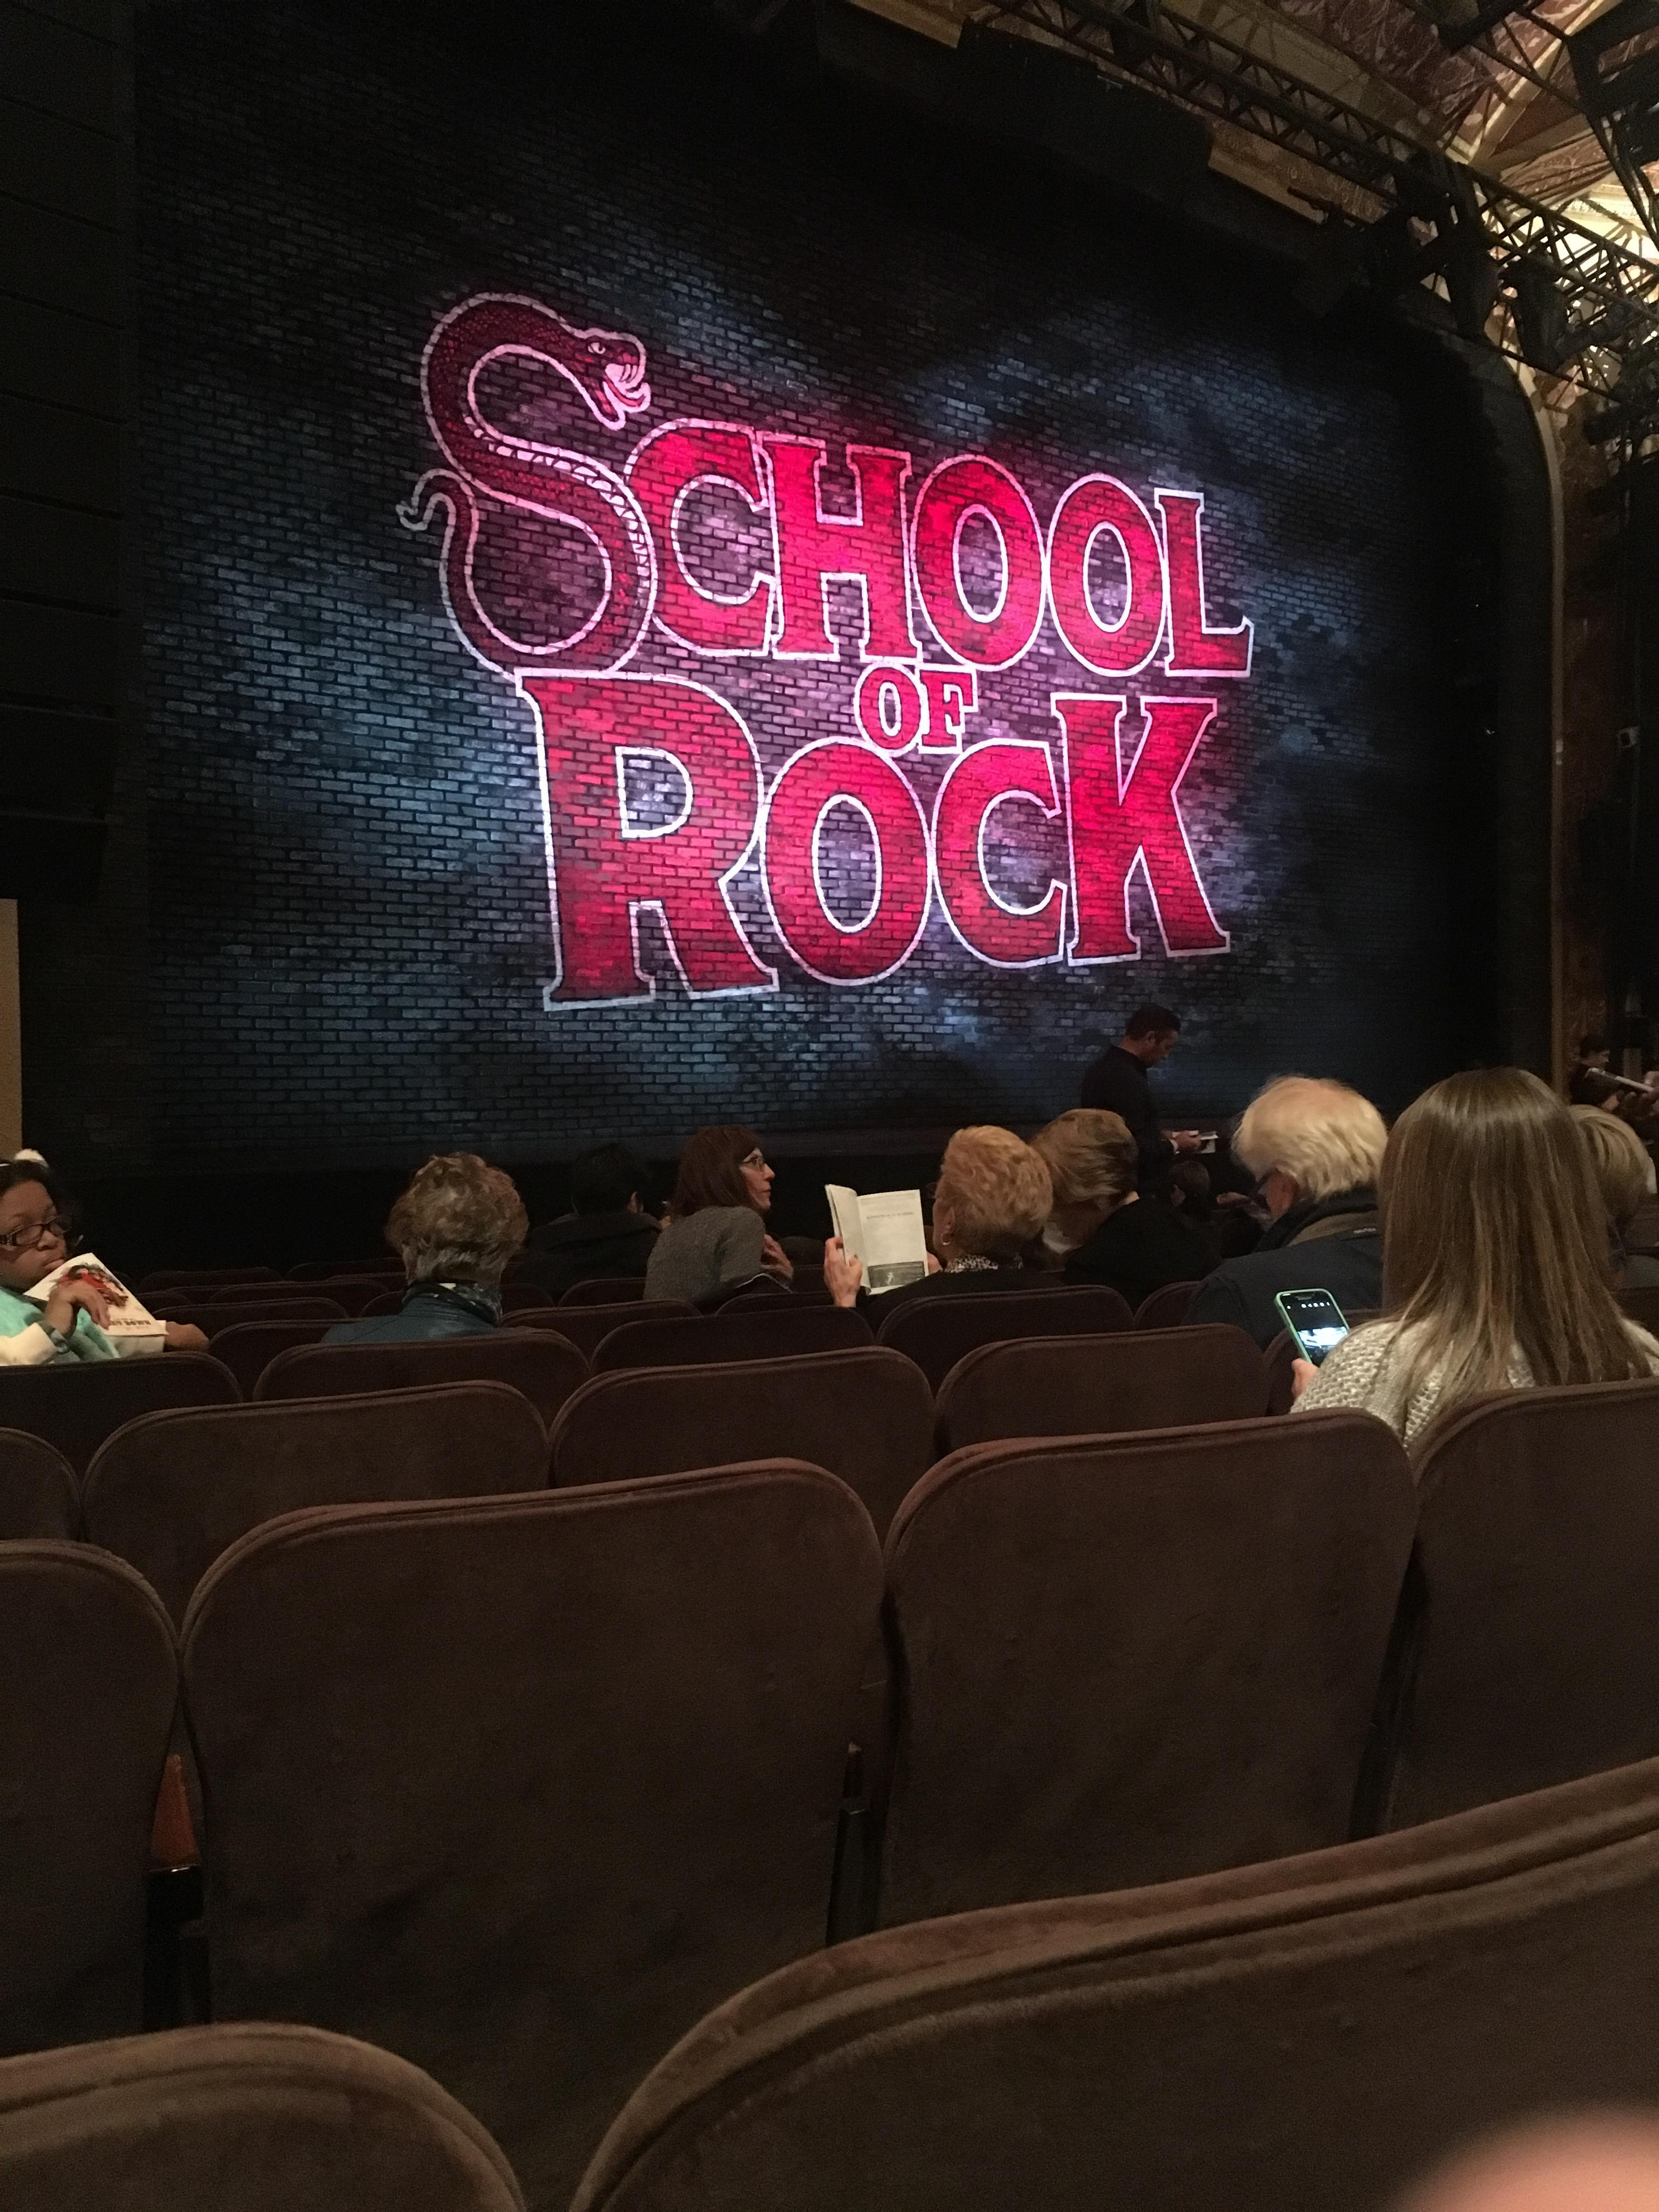 Winter Garden Theatre Section Orchestra L Row K Seat 15